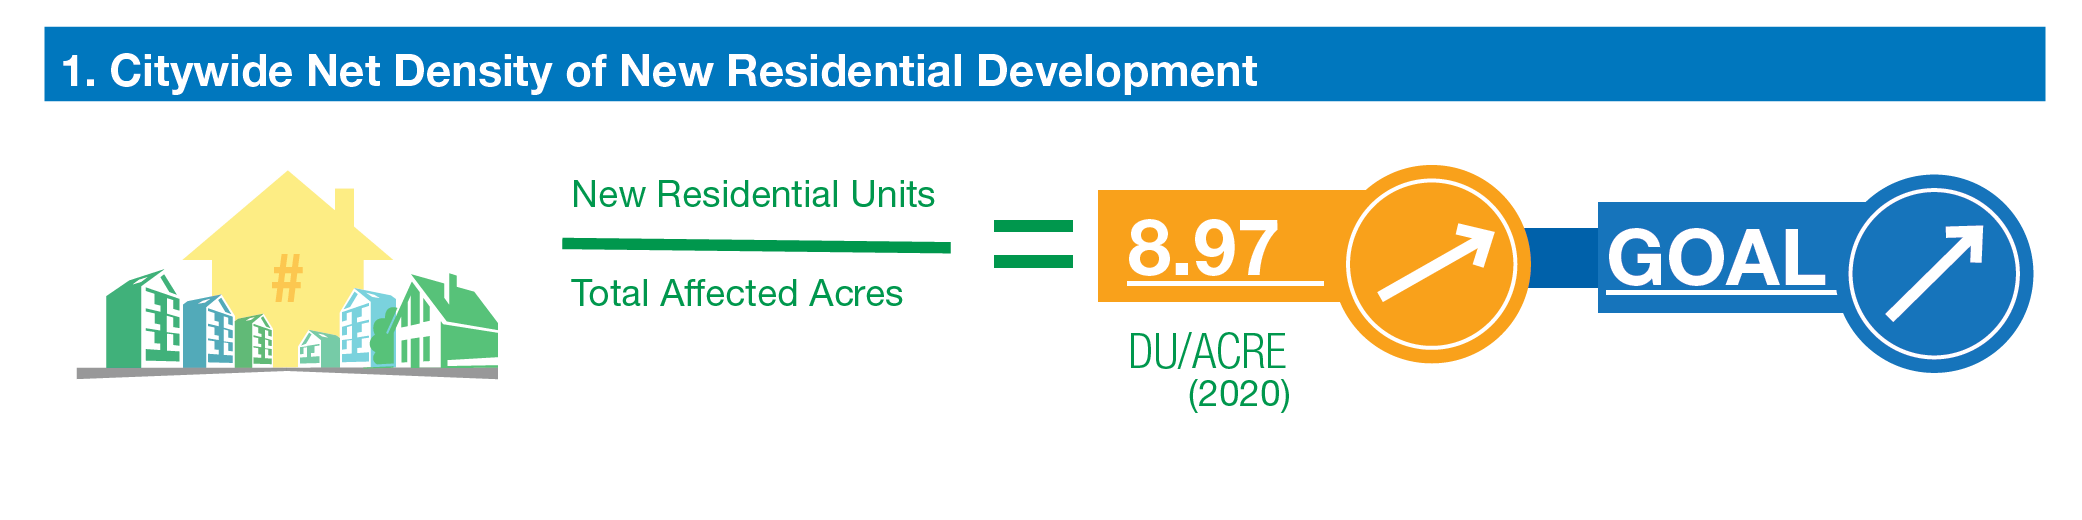 citywide net density of new residential development. new residential units divided by total affected acres is 8.97. trending up. goal is to increase.